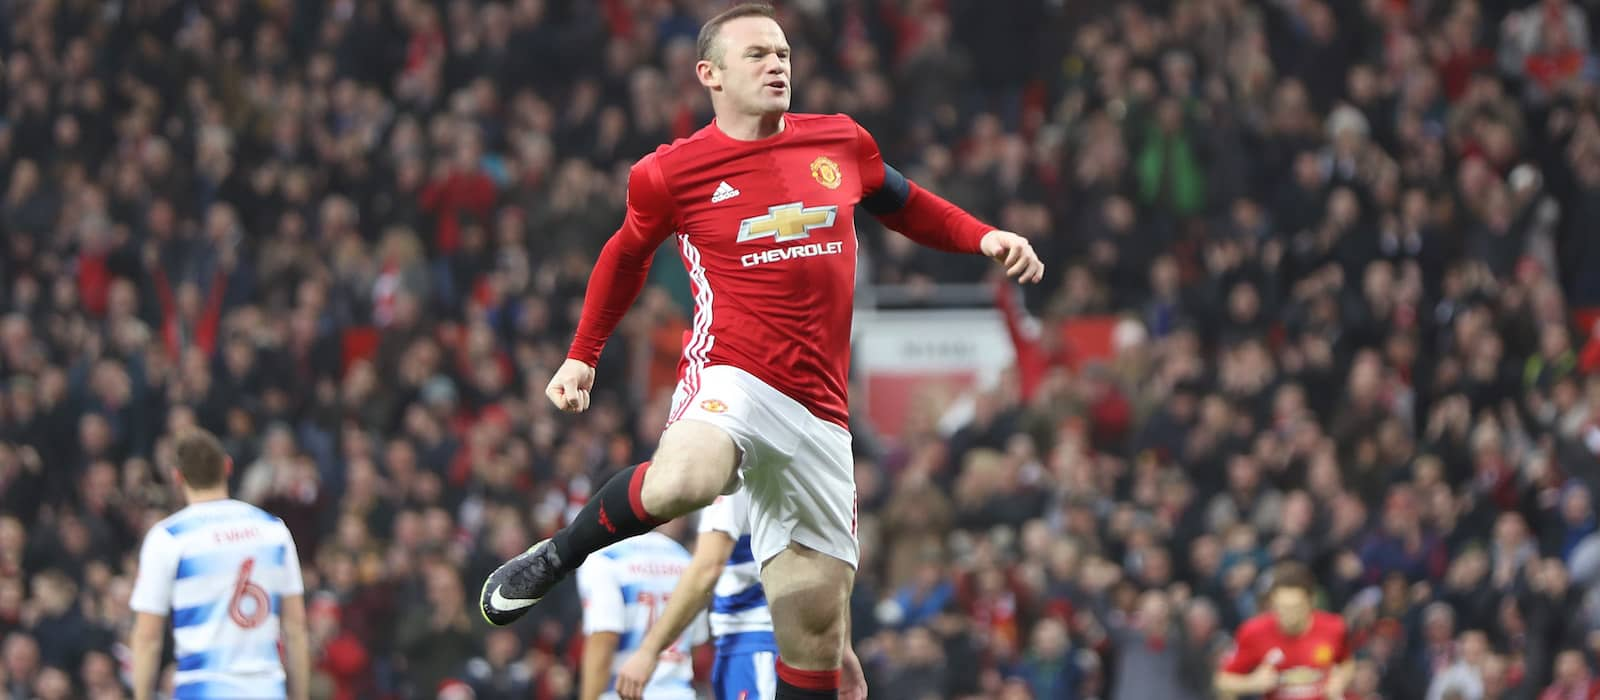 Video: Wayne Rooney leaves Manchester United fans reminiscing with fine display